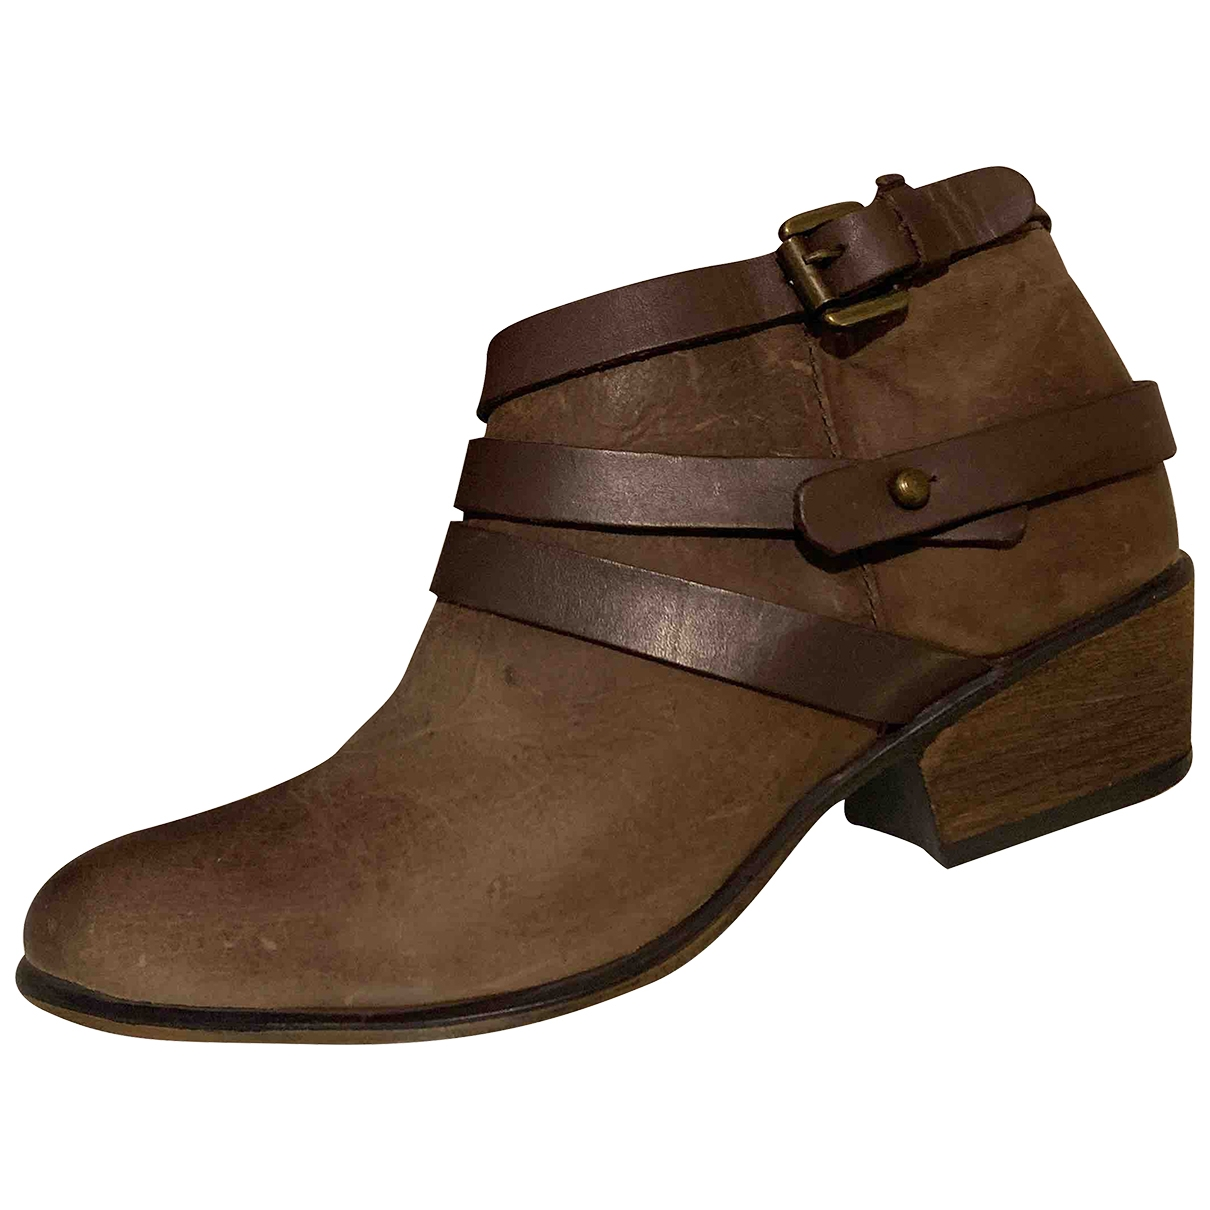 Steve Madden \N Brown Leather Ankle boots for Women 7 US